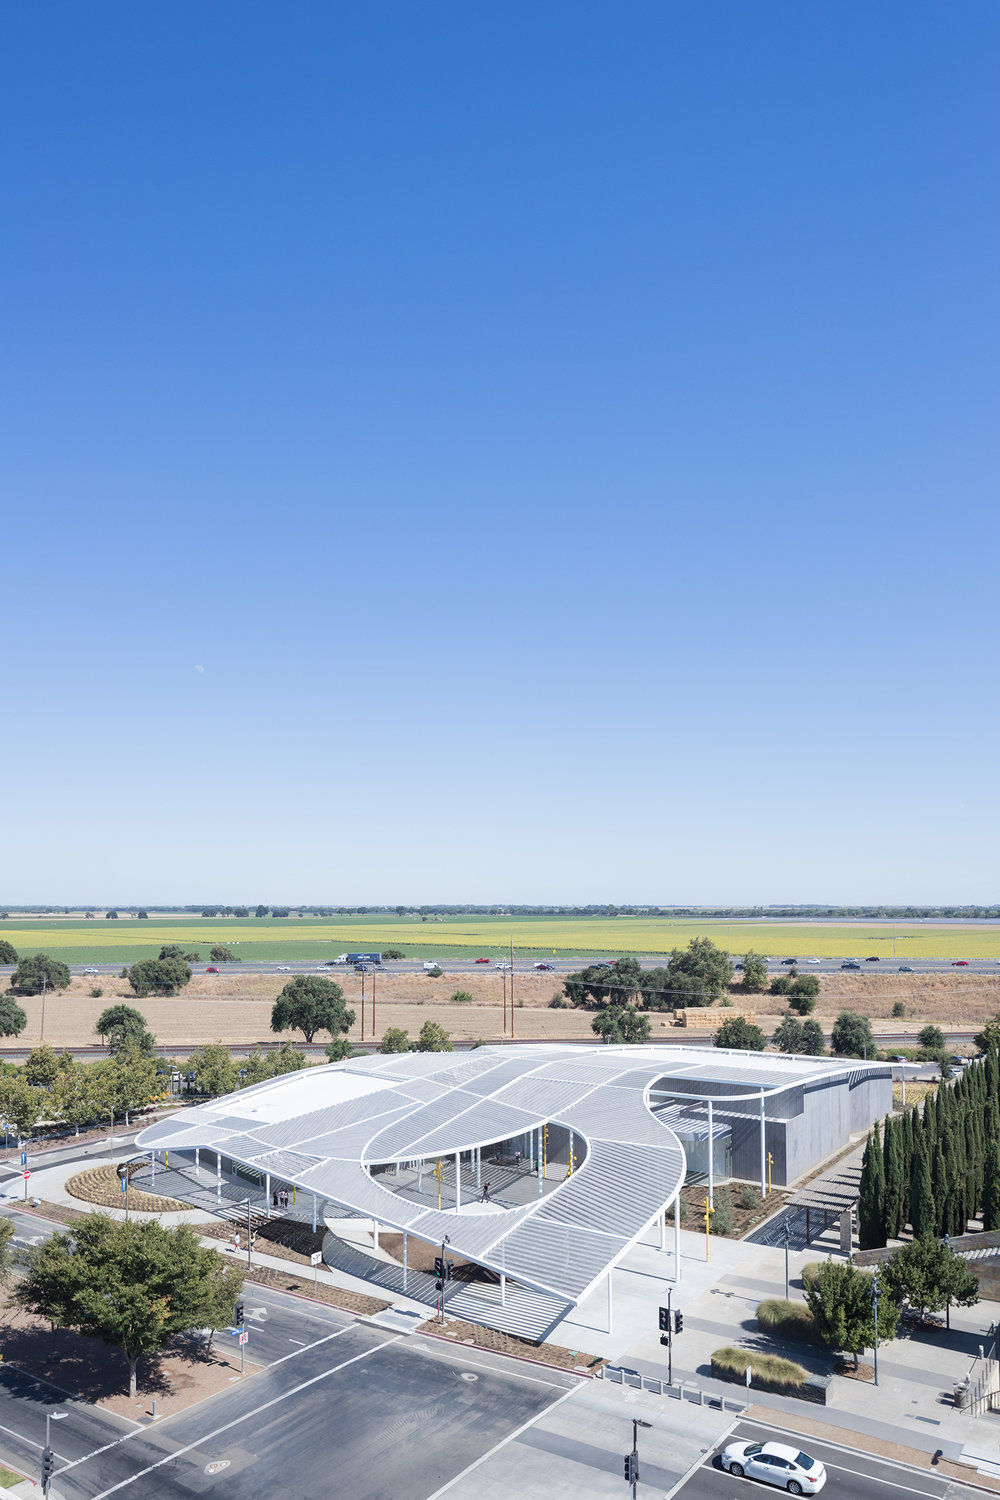 133_IID_ARCHITECTURE-Manetti Shrem Museum-Aerial-View-from-the-Northwest-View_surfacemag_1.jpg